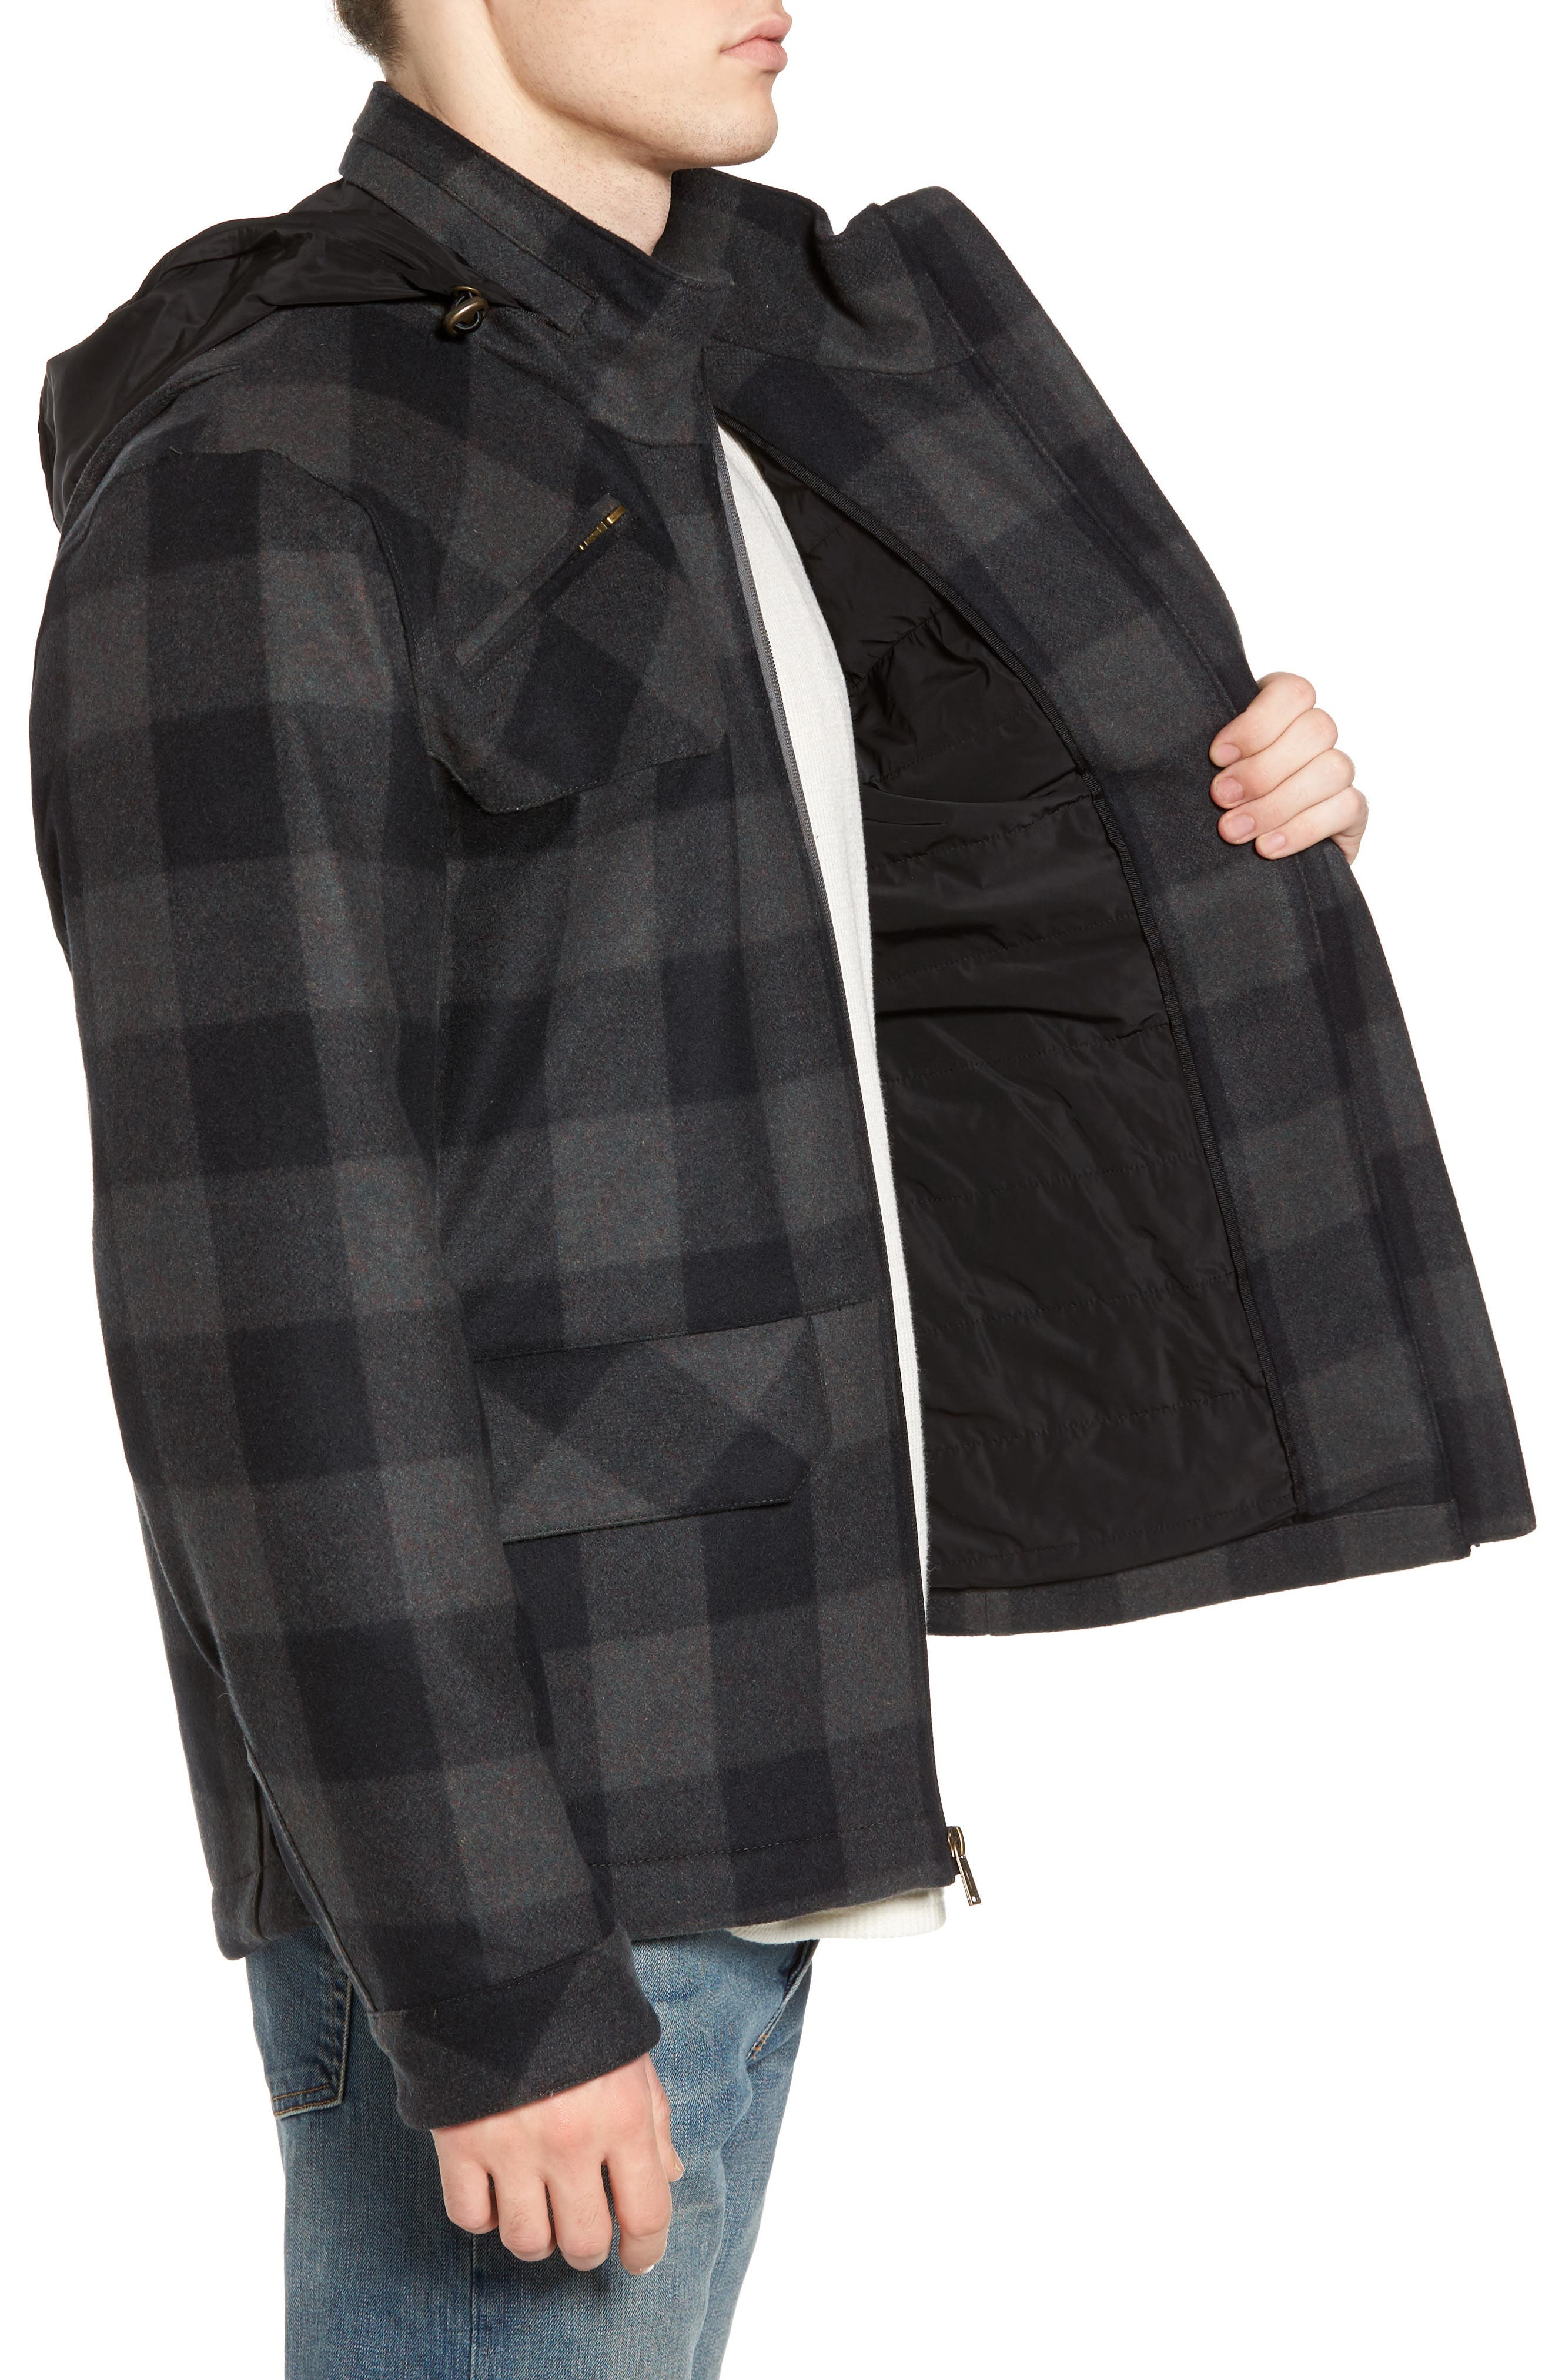 Albuquerque Jacket,                             Alternate thumbnail 3, color,                             Olive Buffalo Plaid